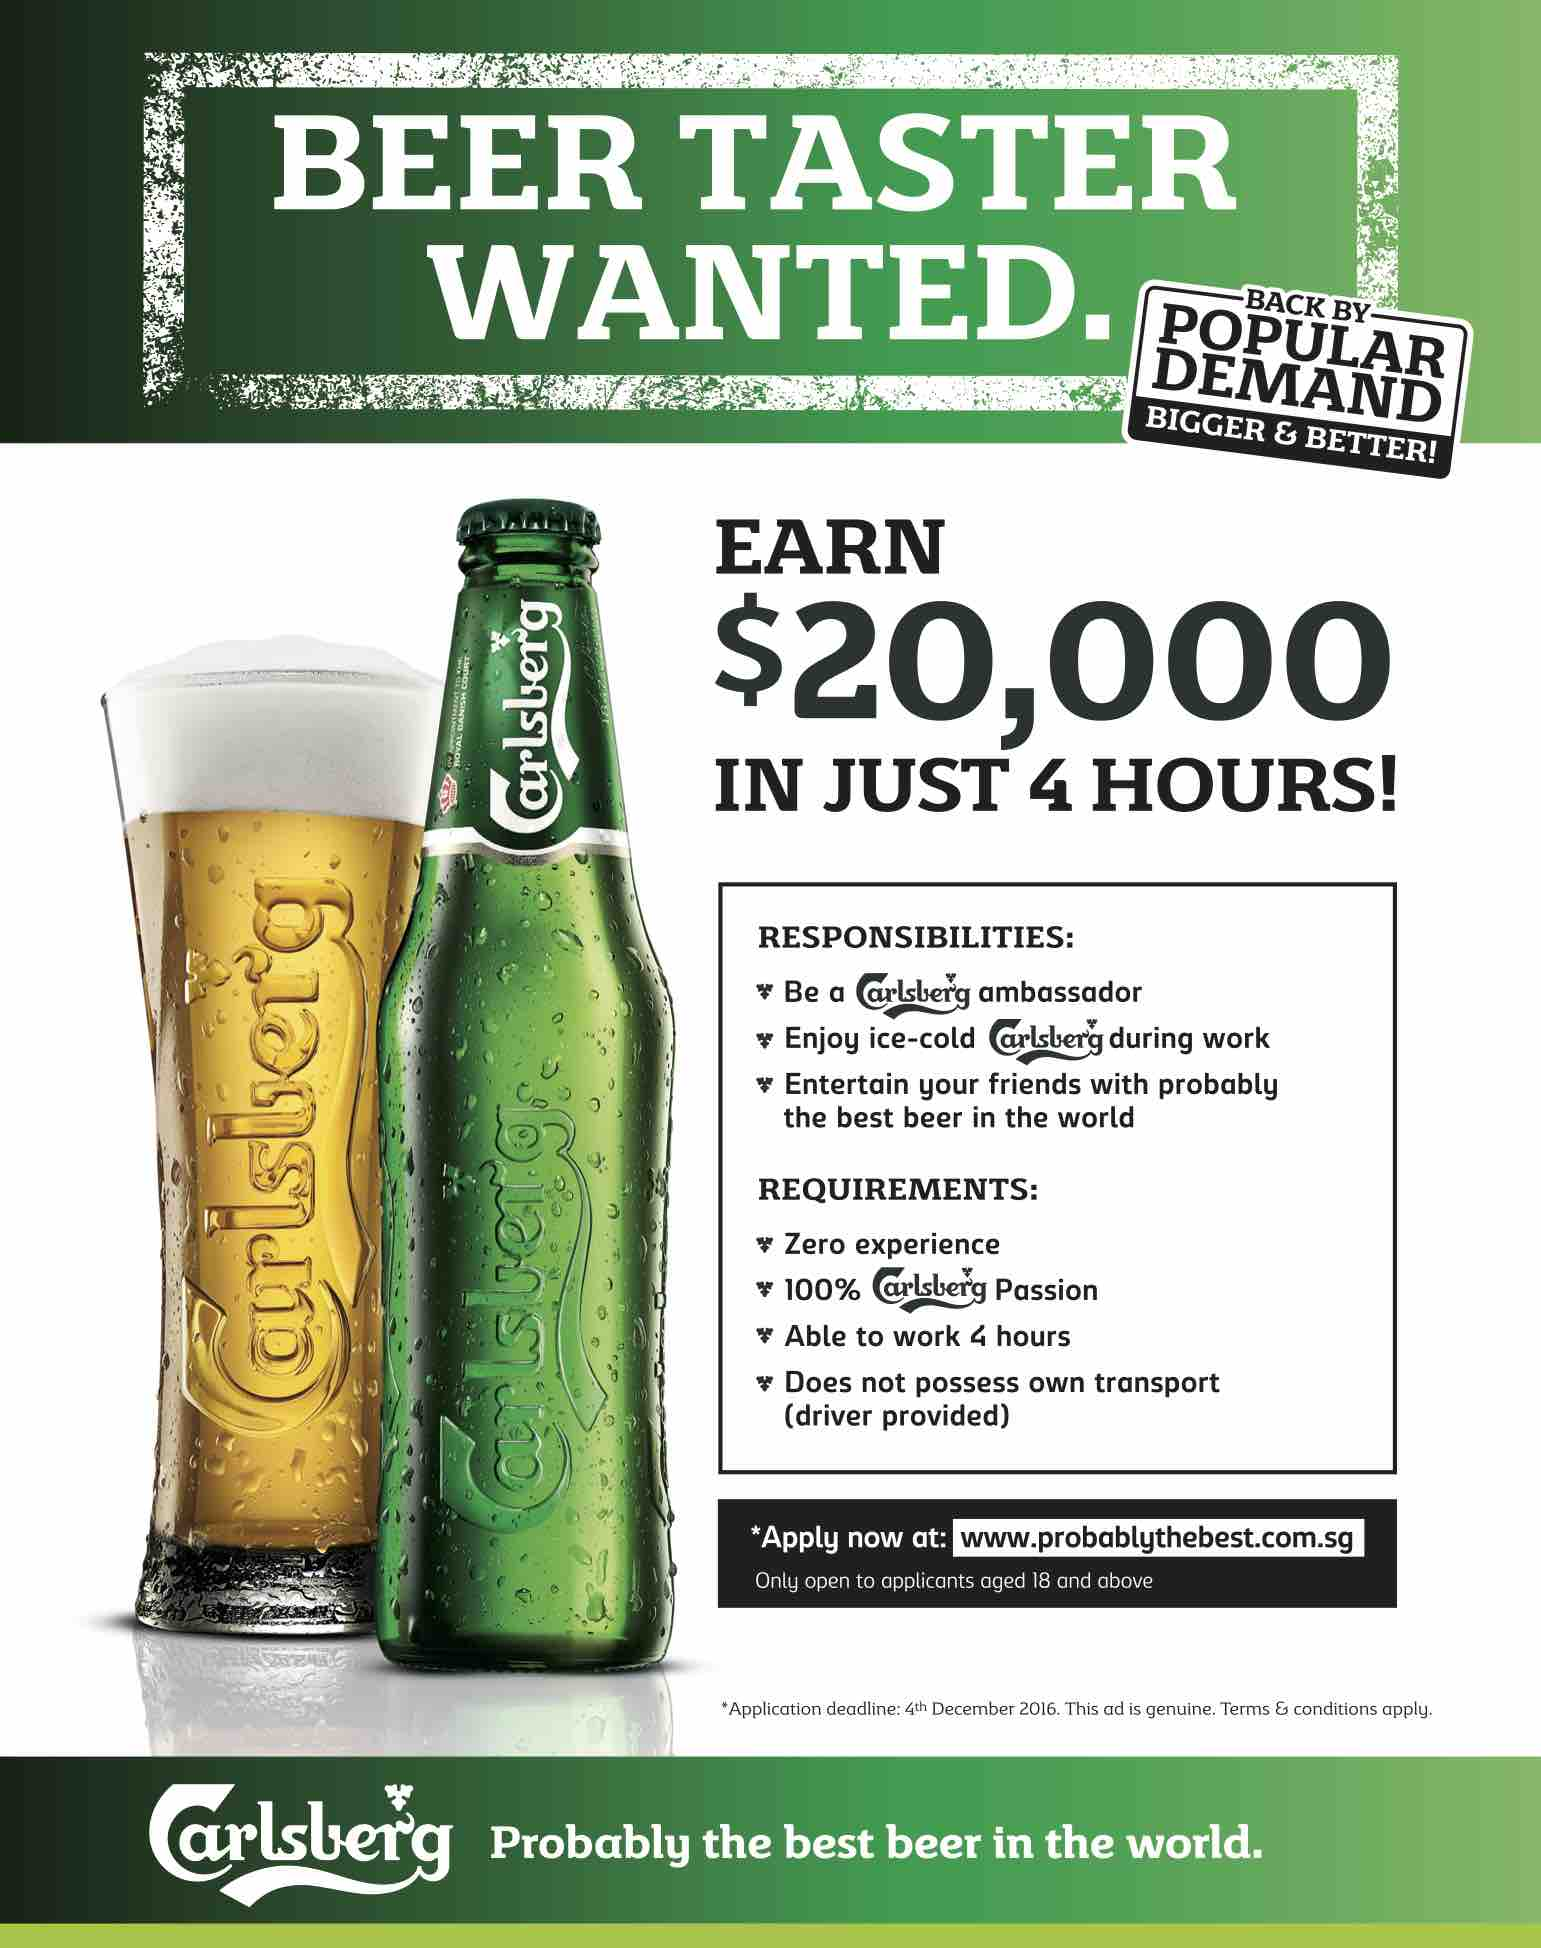 carlsberg pays for probably the best job in the world carlsberg probably the best job in the world